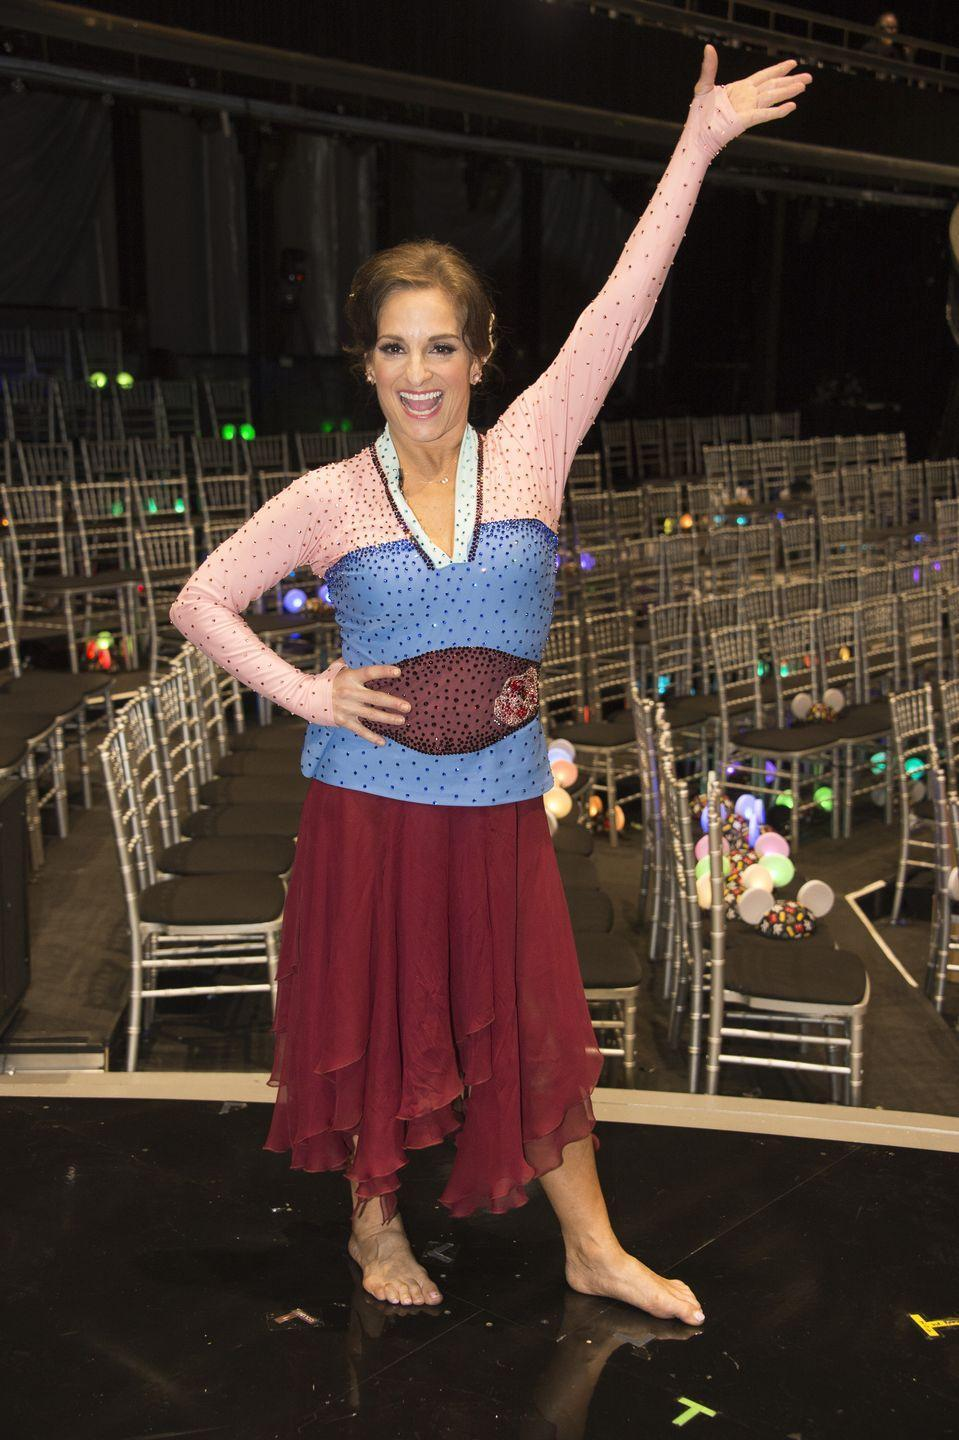 <p>Shortly after her show-stopping performance at the 1984 Olympic Games, Mary Lou Retton retired. The former Olympian became a motivational speaker and was inducted into the U.S. Olympic Hall of Fame in 1985. Most recently, Retton appeared on <em>Dancing With The Stars</em>. </p>